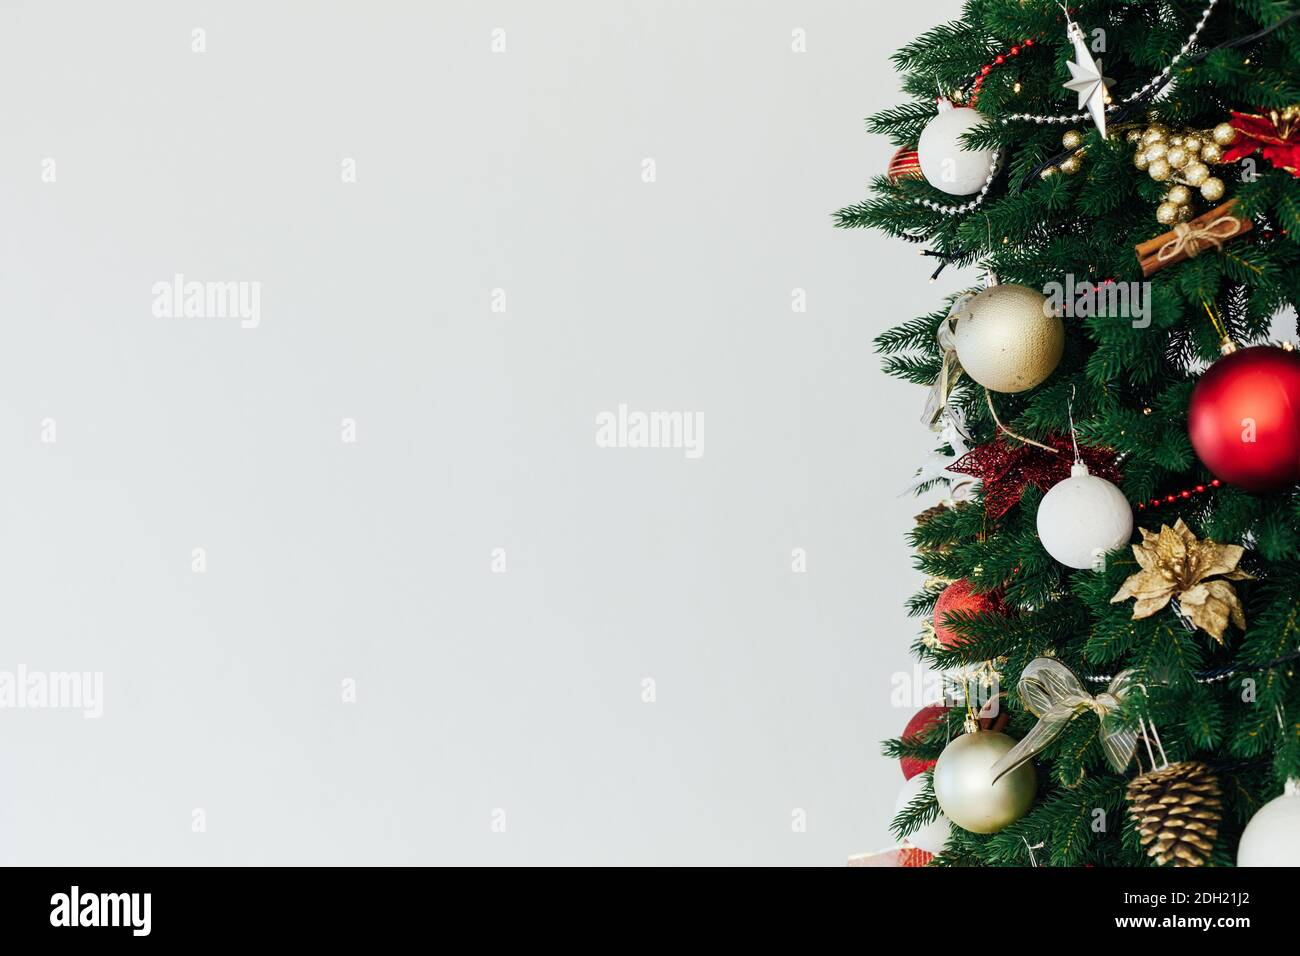 Twigs Christmas Tree Decor Garland Interior New Year Place For Inscription Stock Photo Alamy